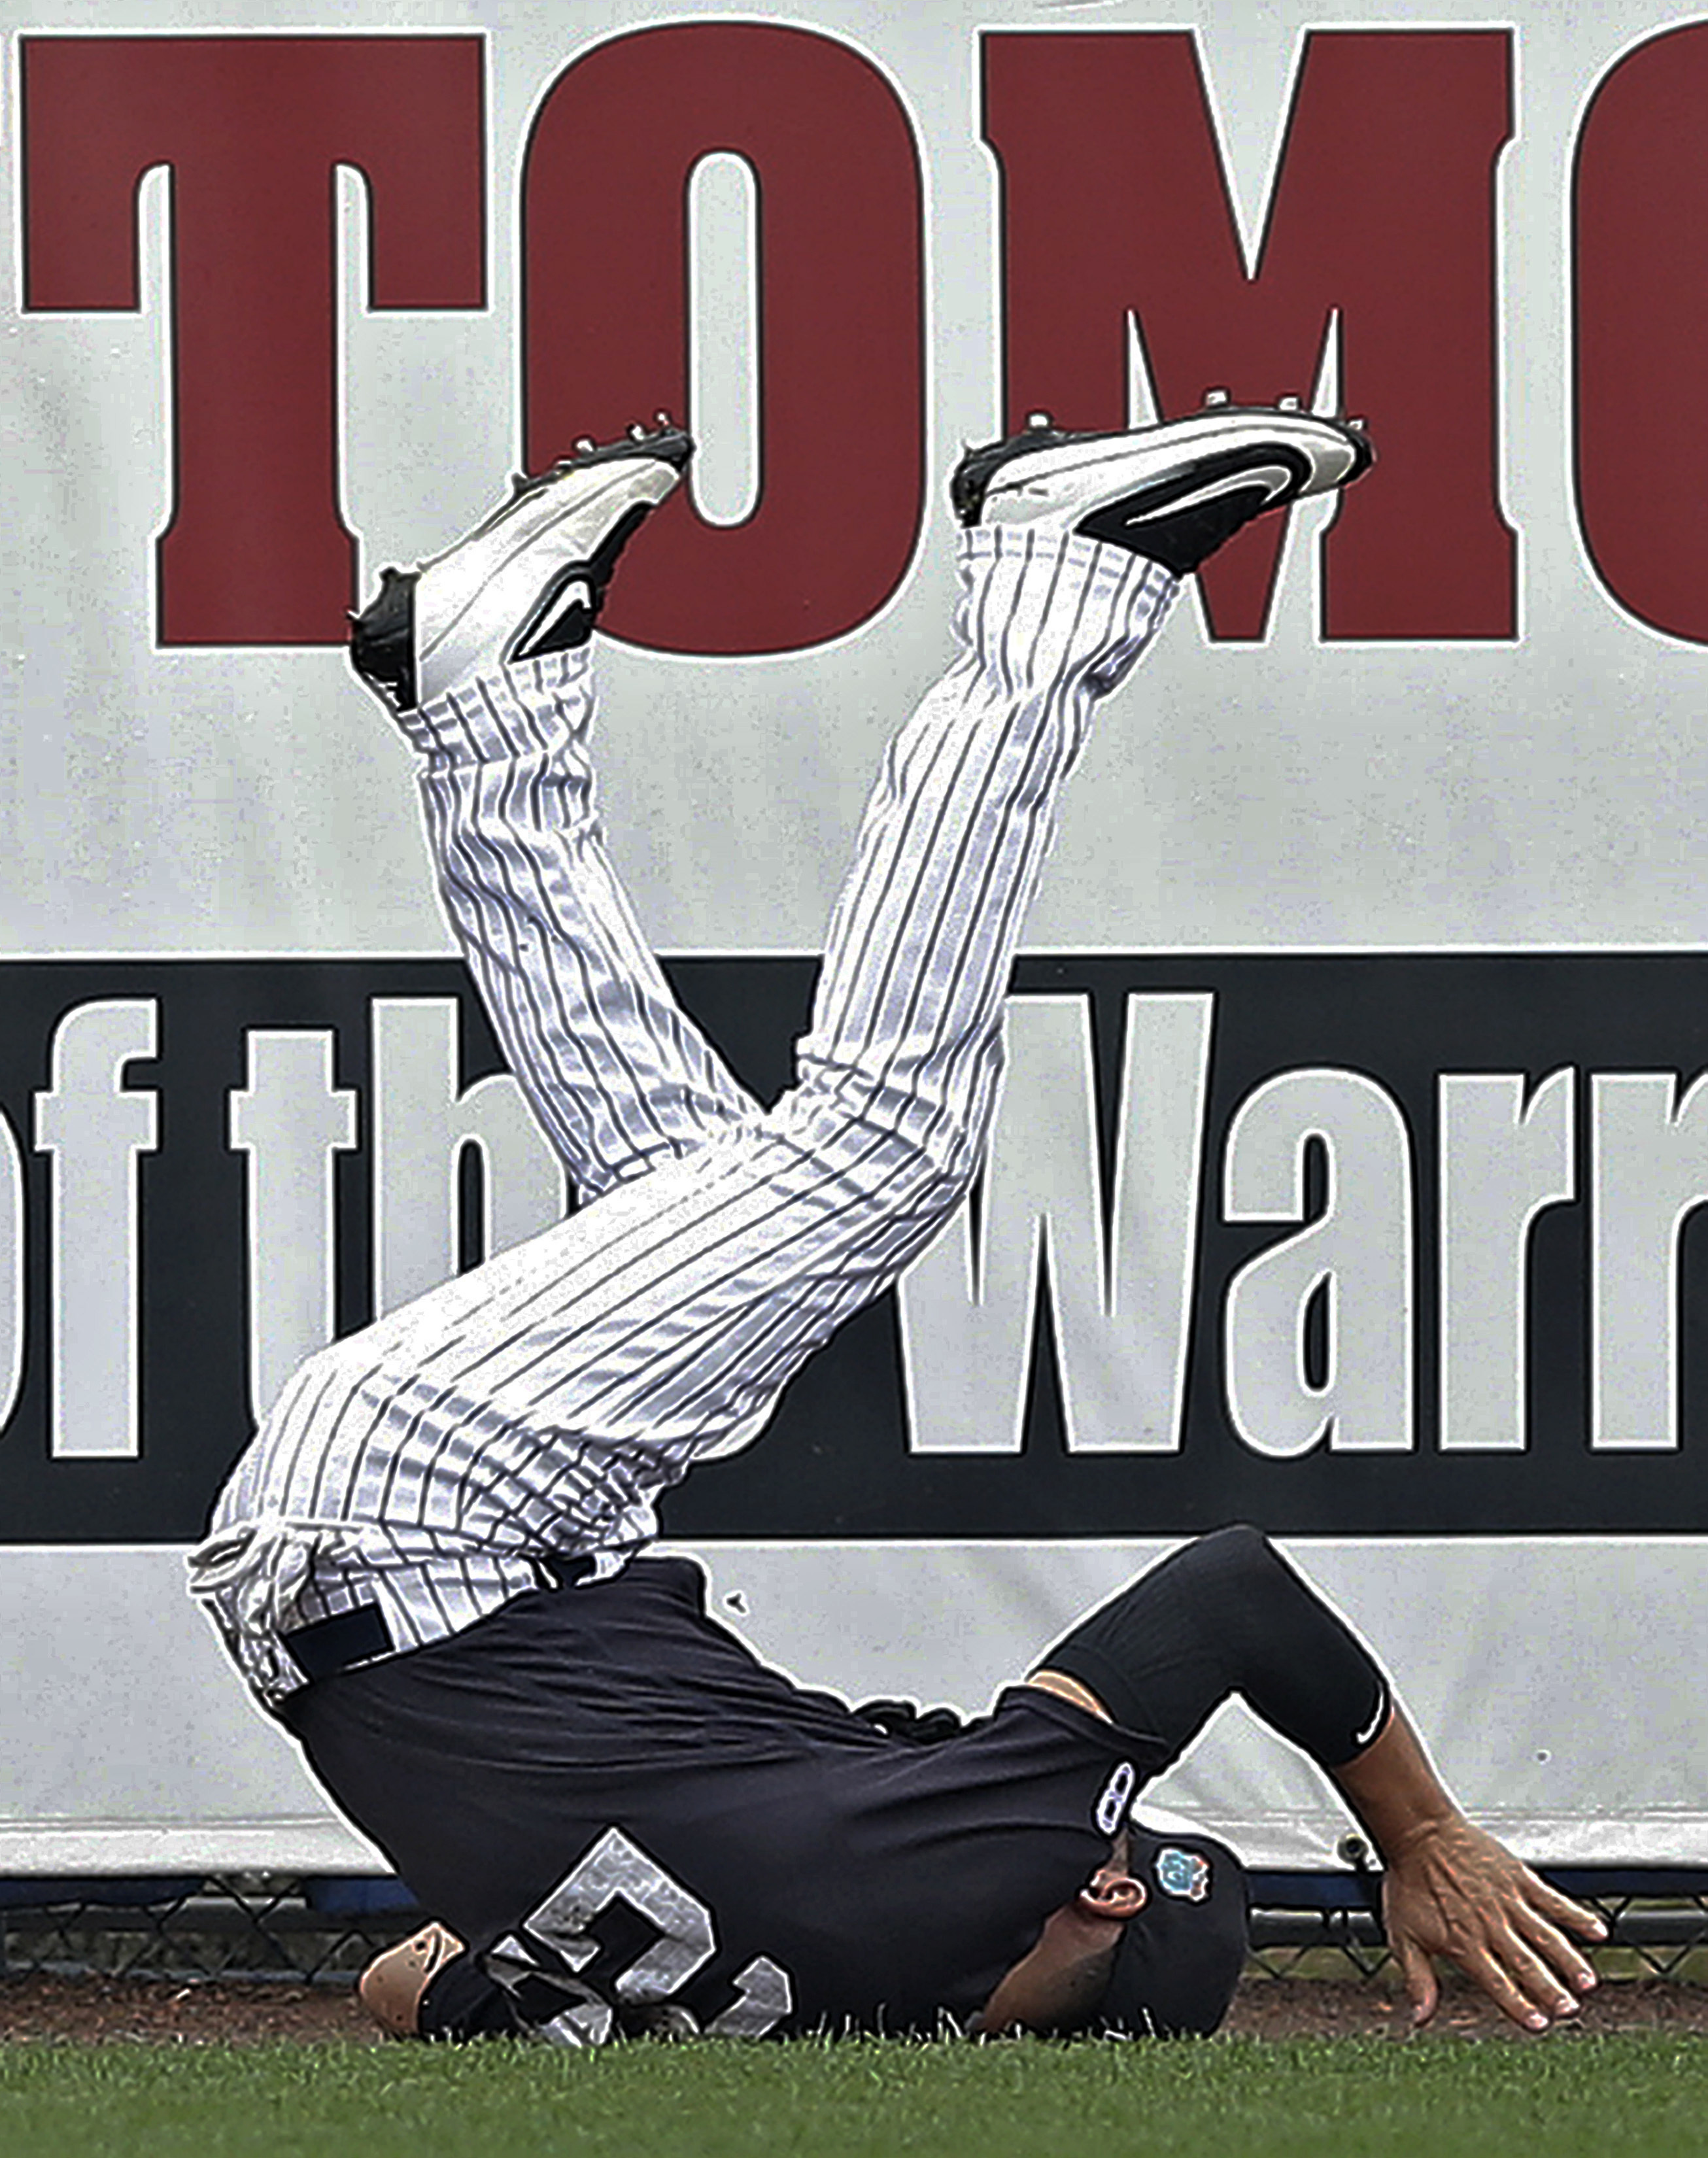 New York Yankees center fielder Jacoby Ellsbury flips over after making a diving catch on a fly ball by Atlanta Braves' Nick Swisher during the first inning of a spring training baseball game Saturday, March 19, 2016, in Tampa, Fla. (AP Photo/Chris O'Mear